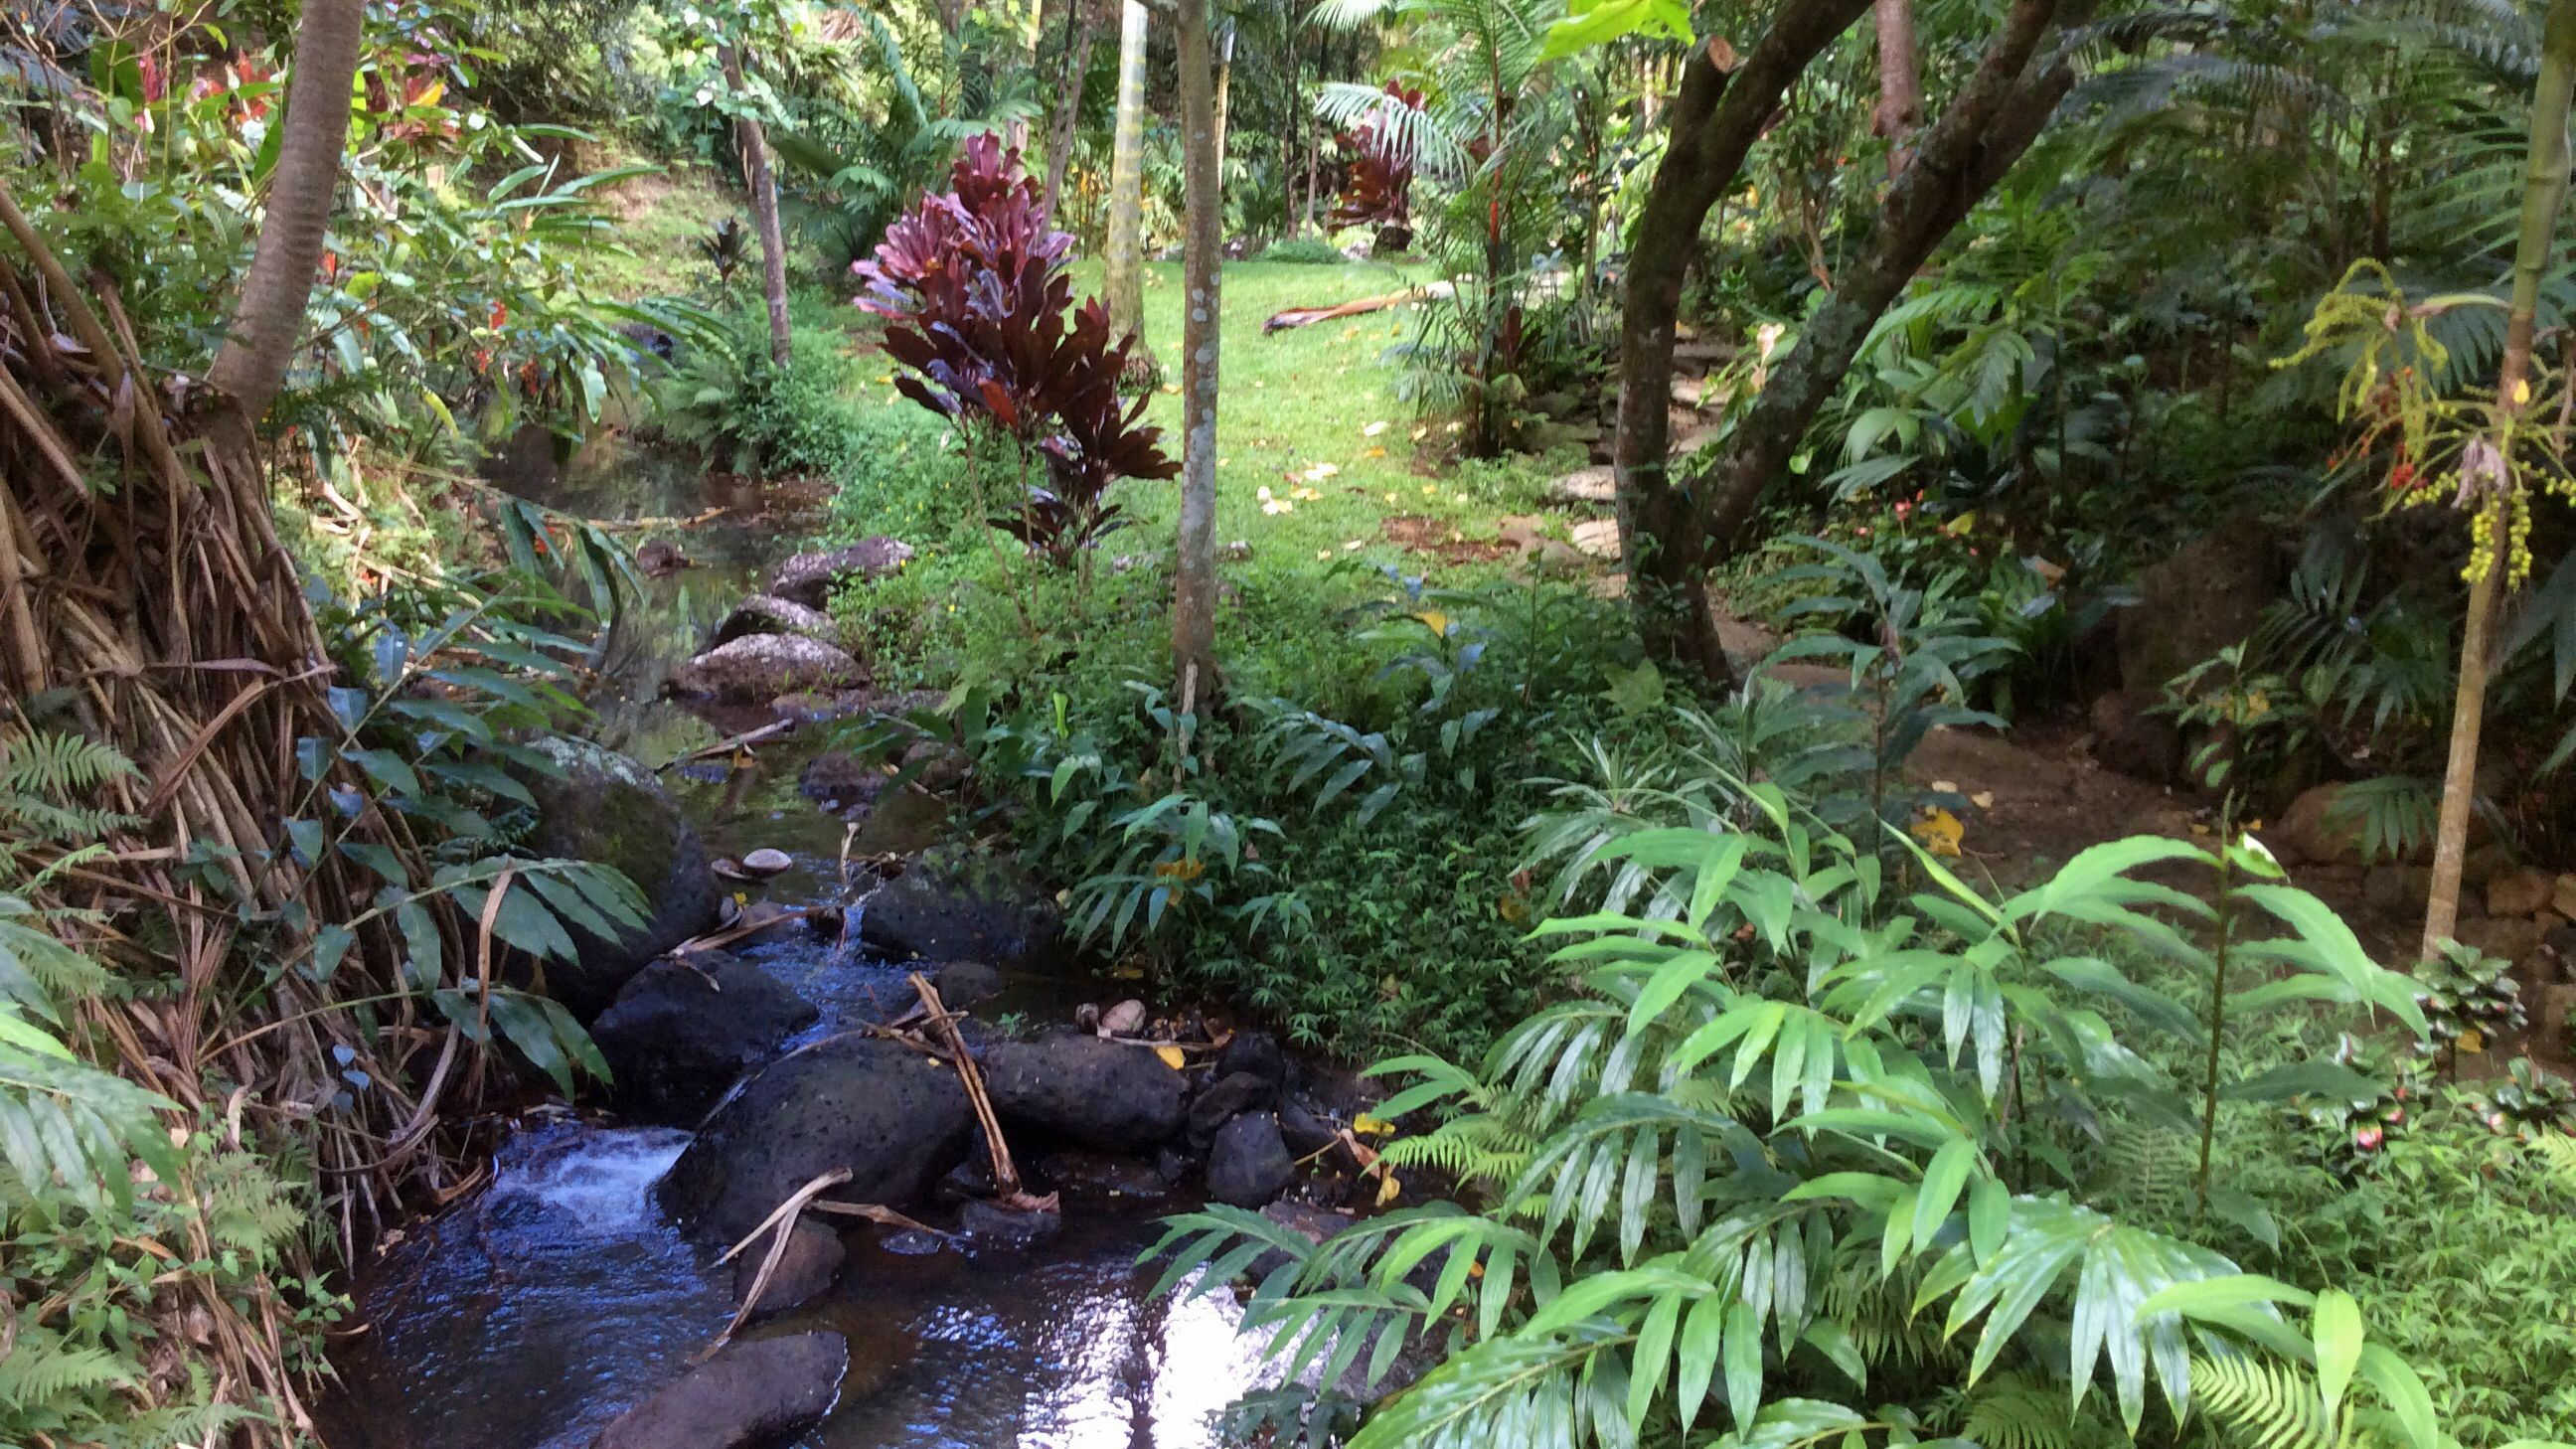 Stream in the forest in Kauai